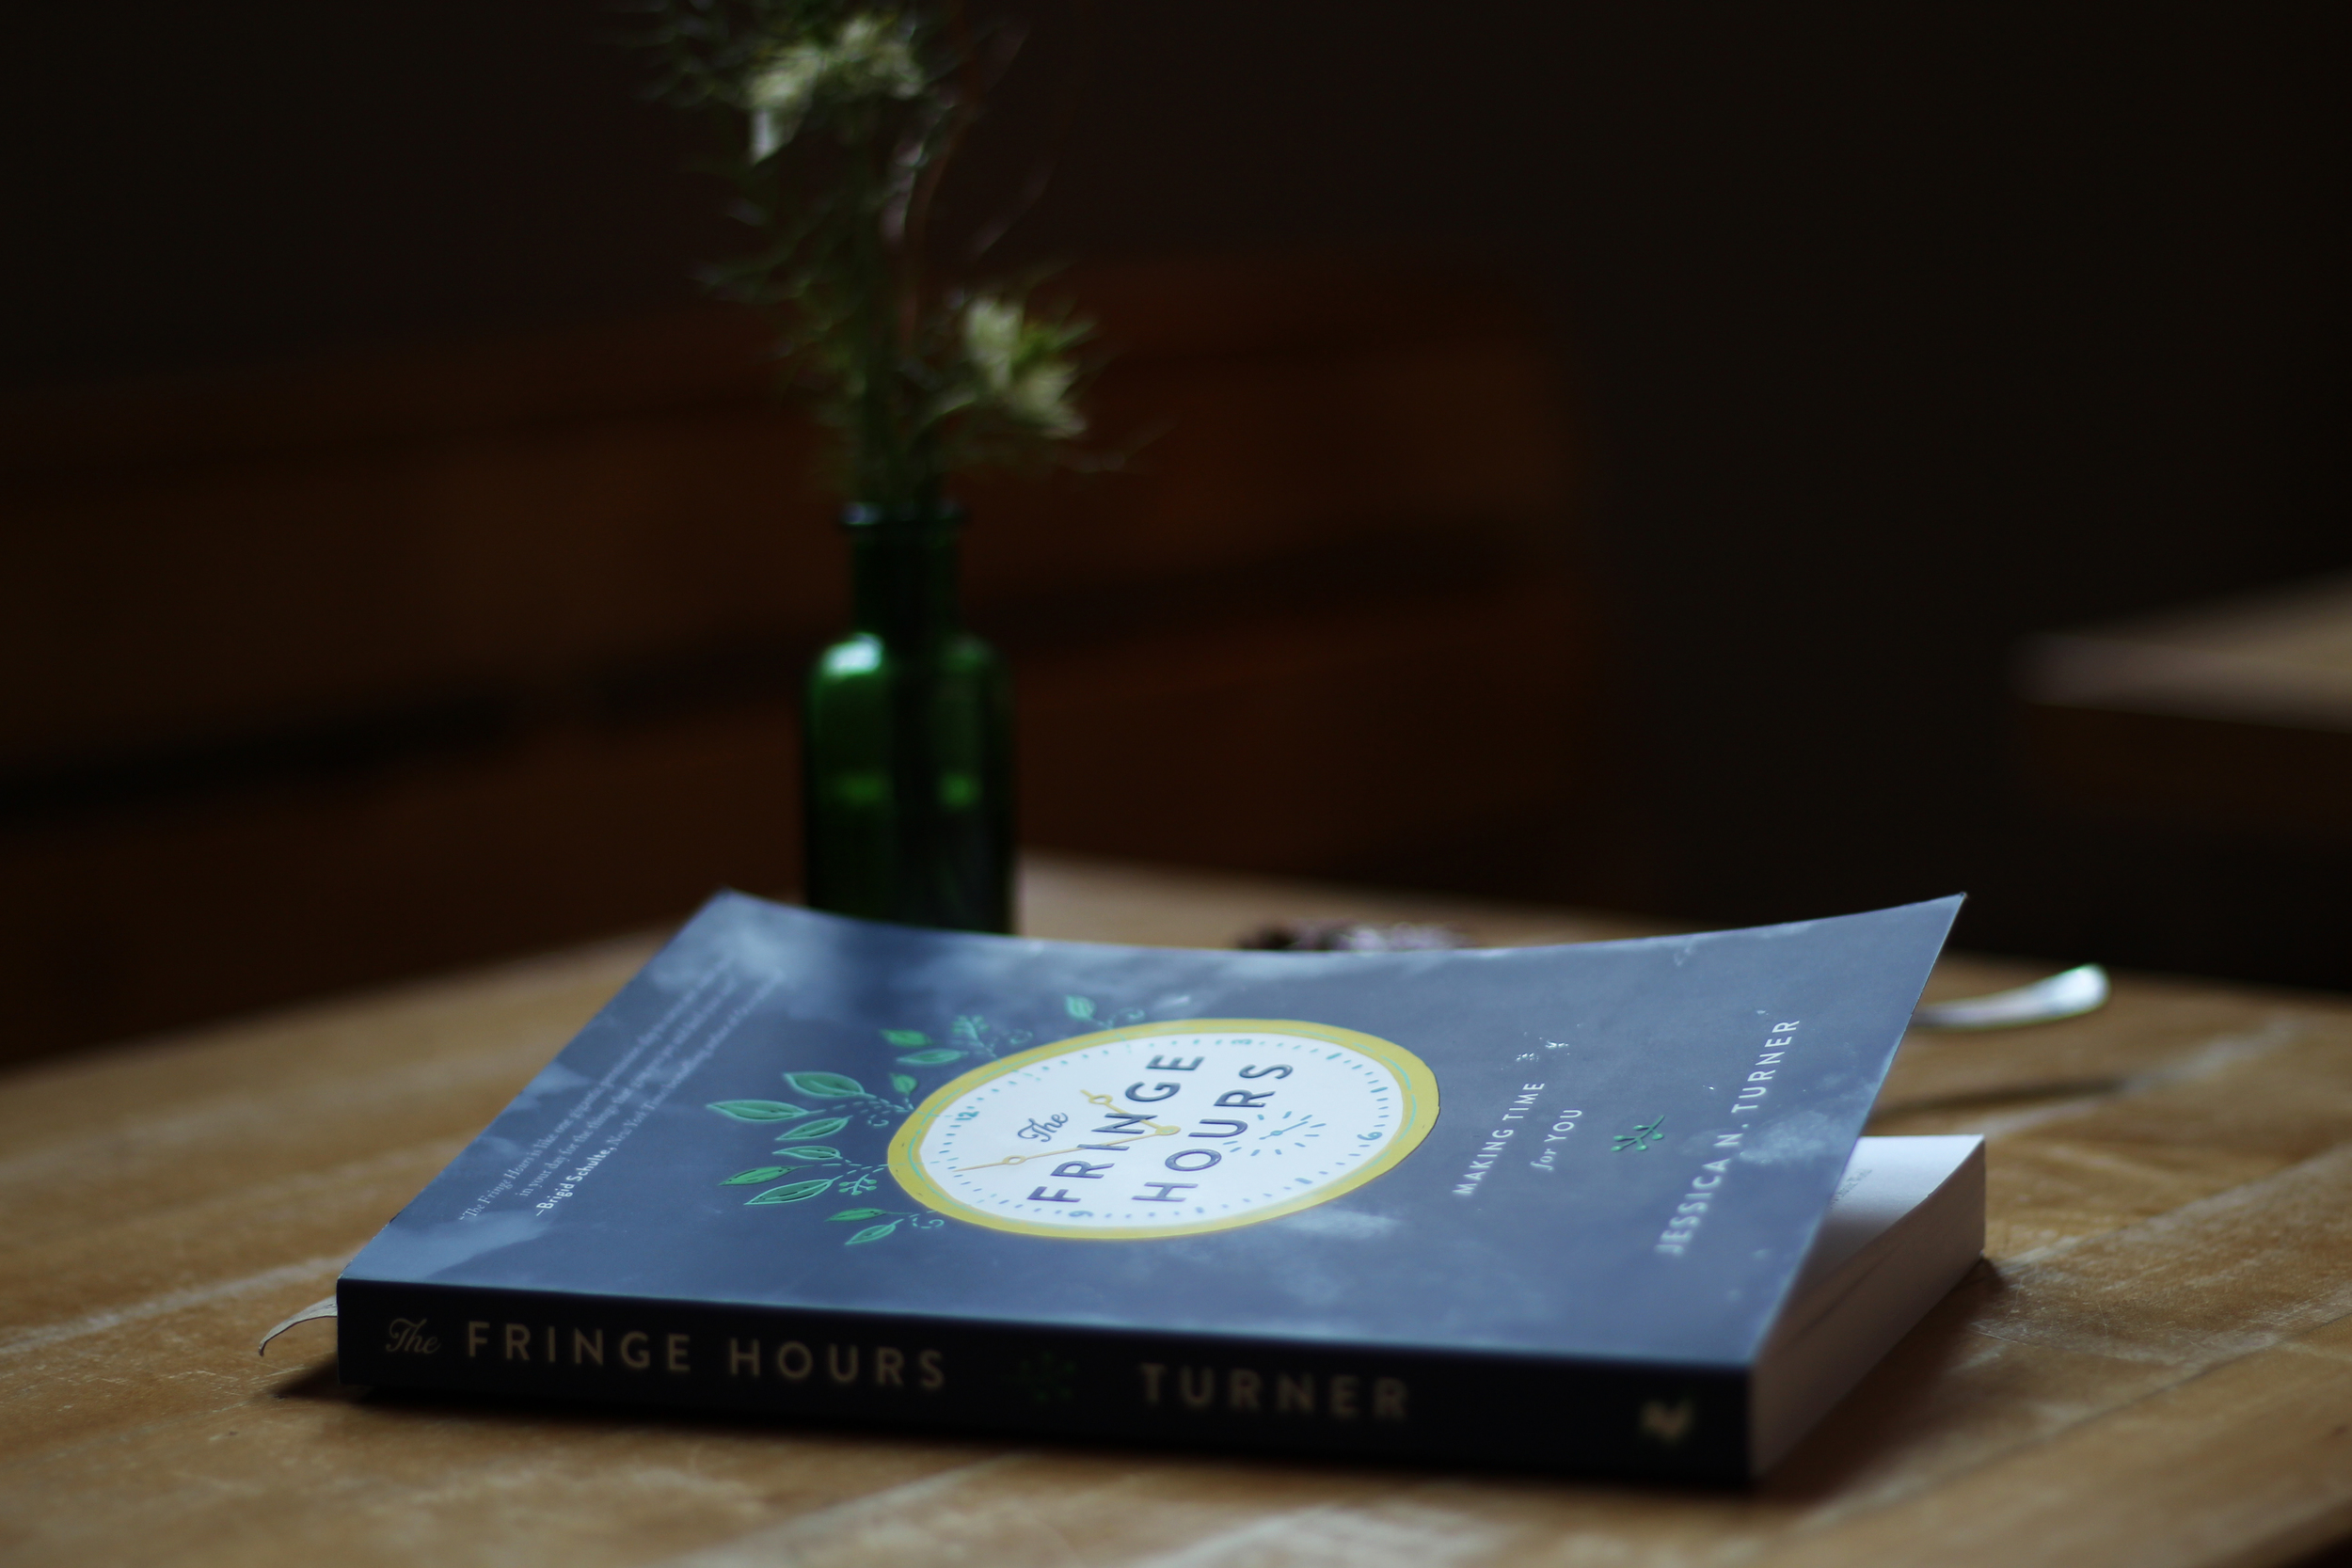 Making the most of 'The Fringe Hours' by Jessica N. Turner